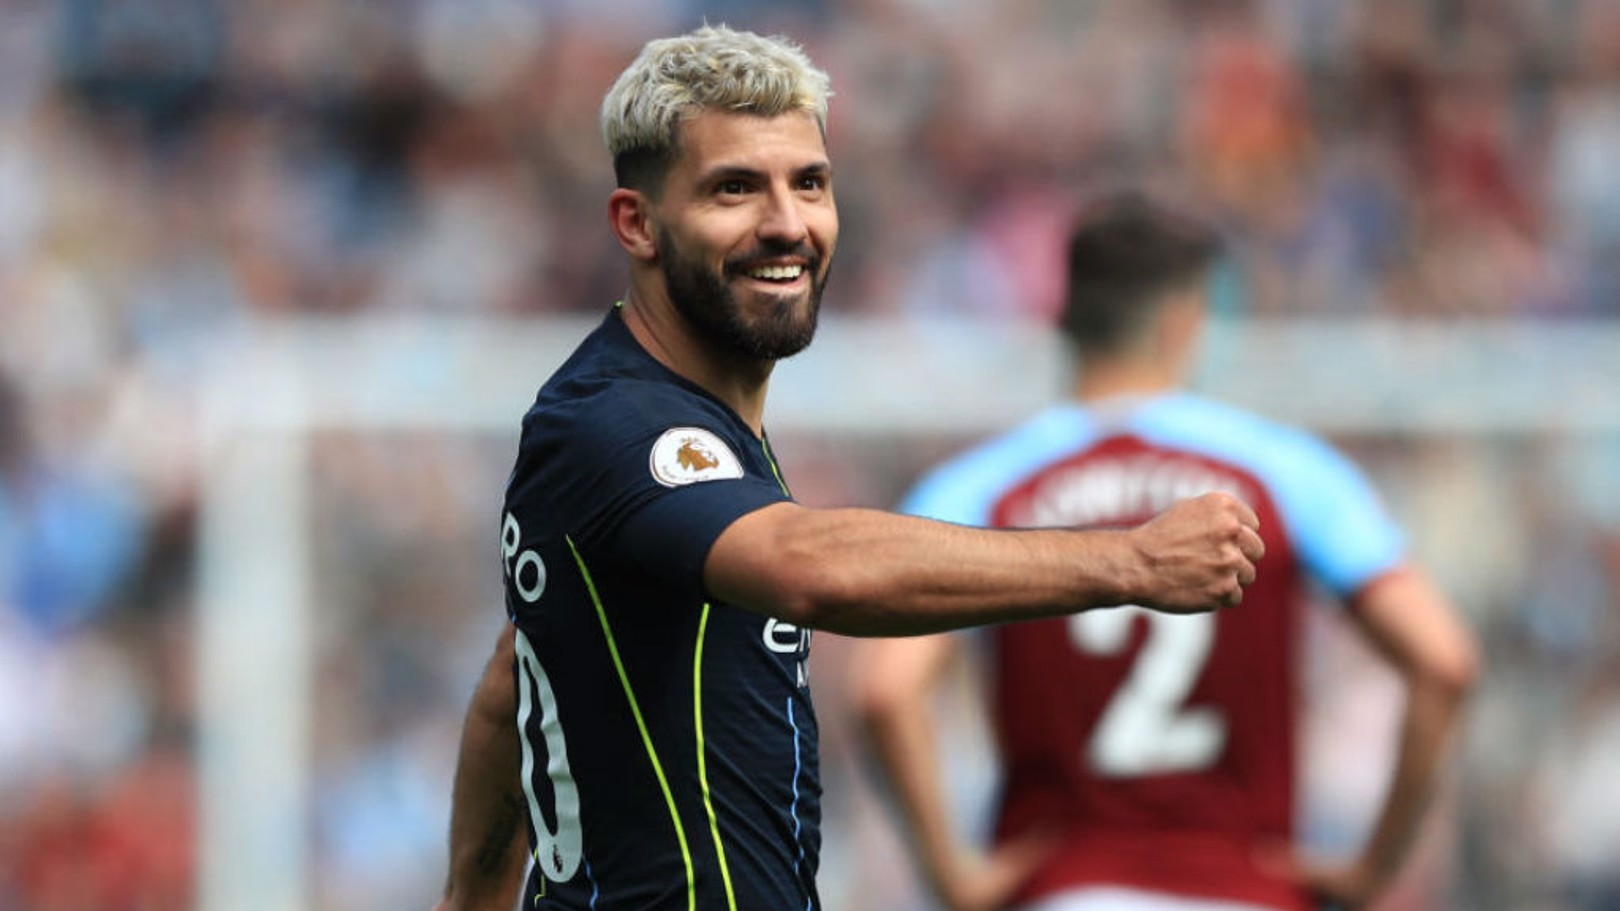 CLASS ACT: Francis Lee says Sergio Aguero's game has been elevated again under the leadership of Pep Guardiola